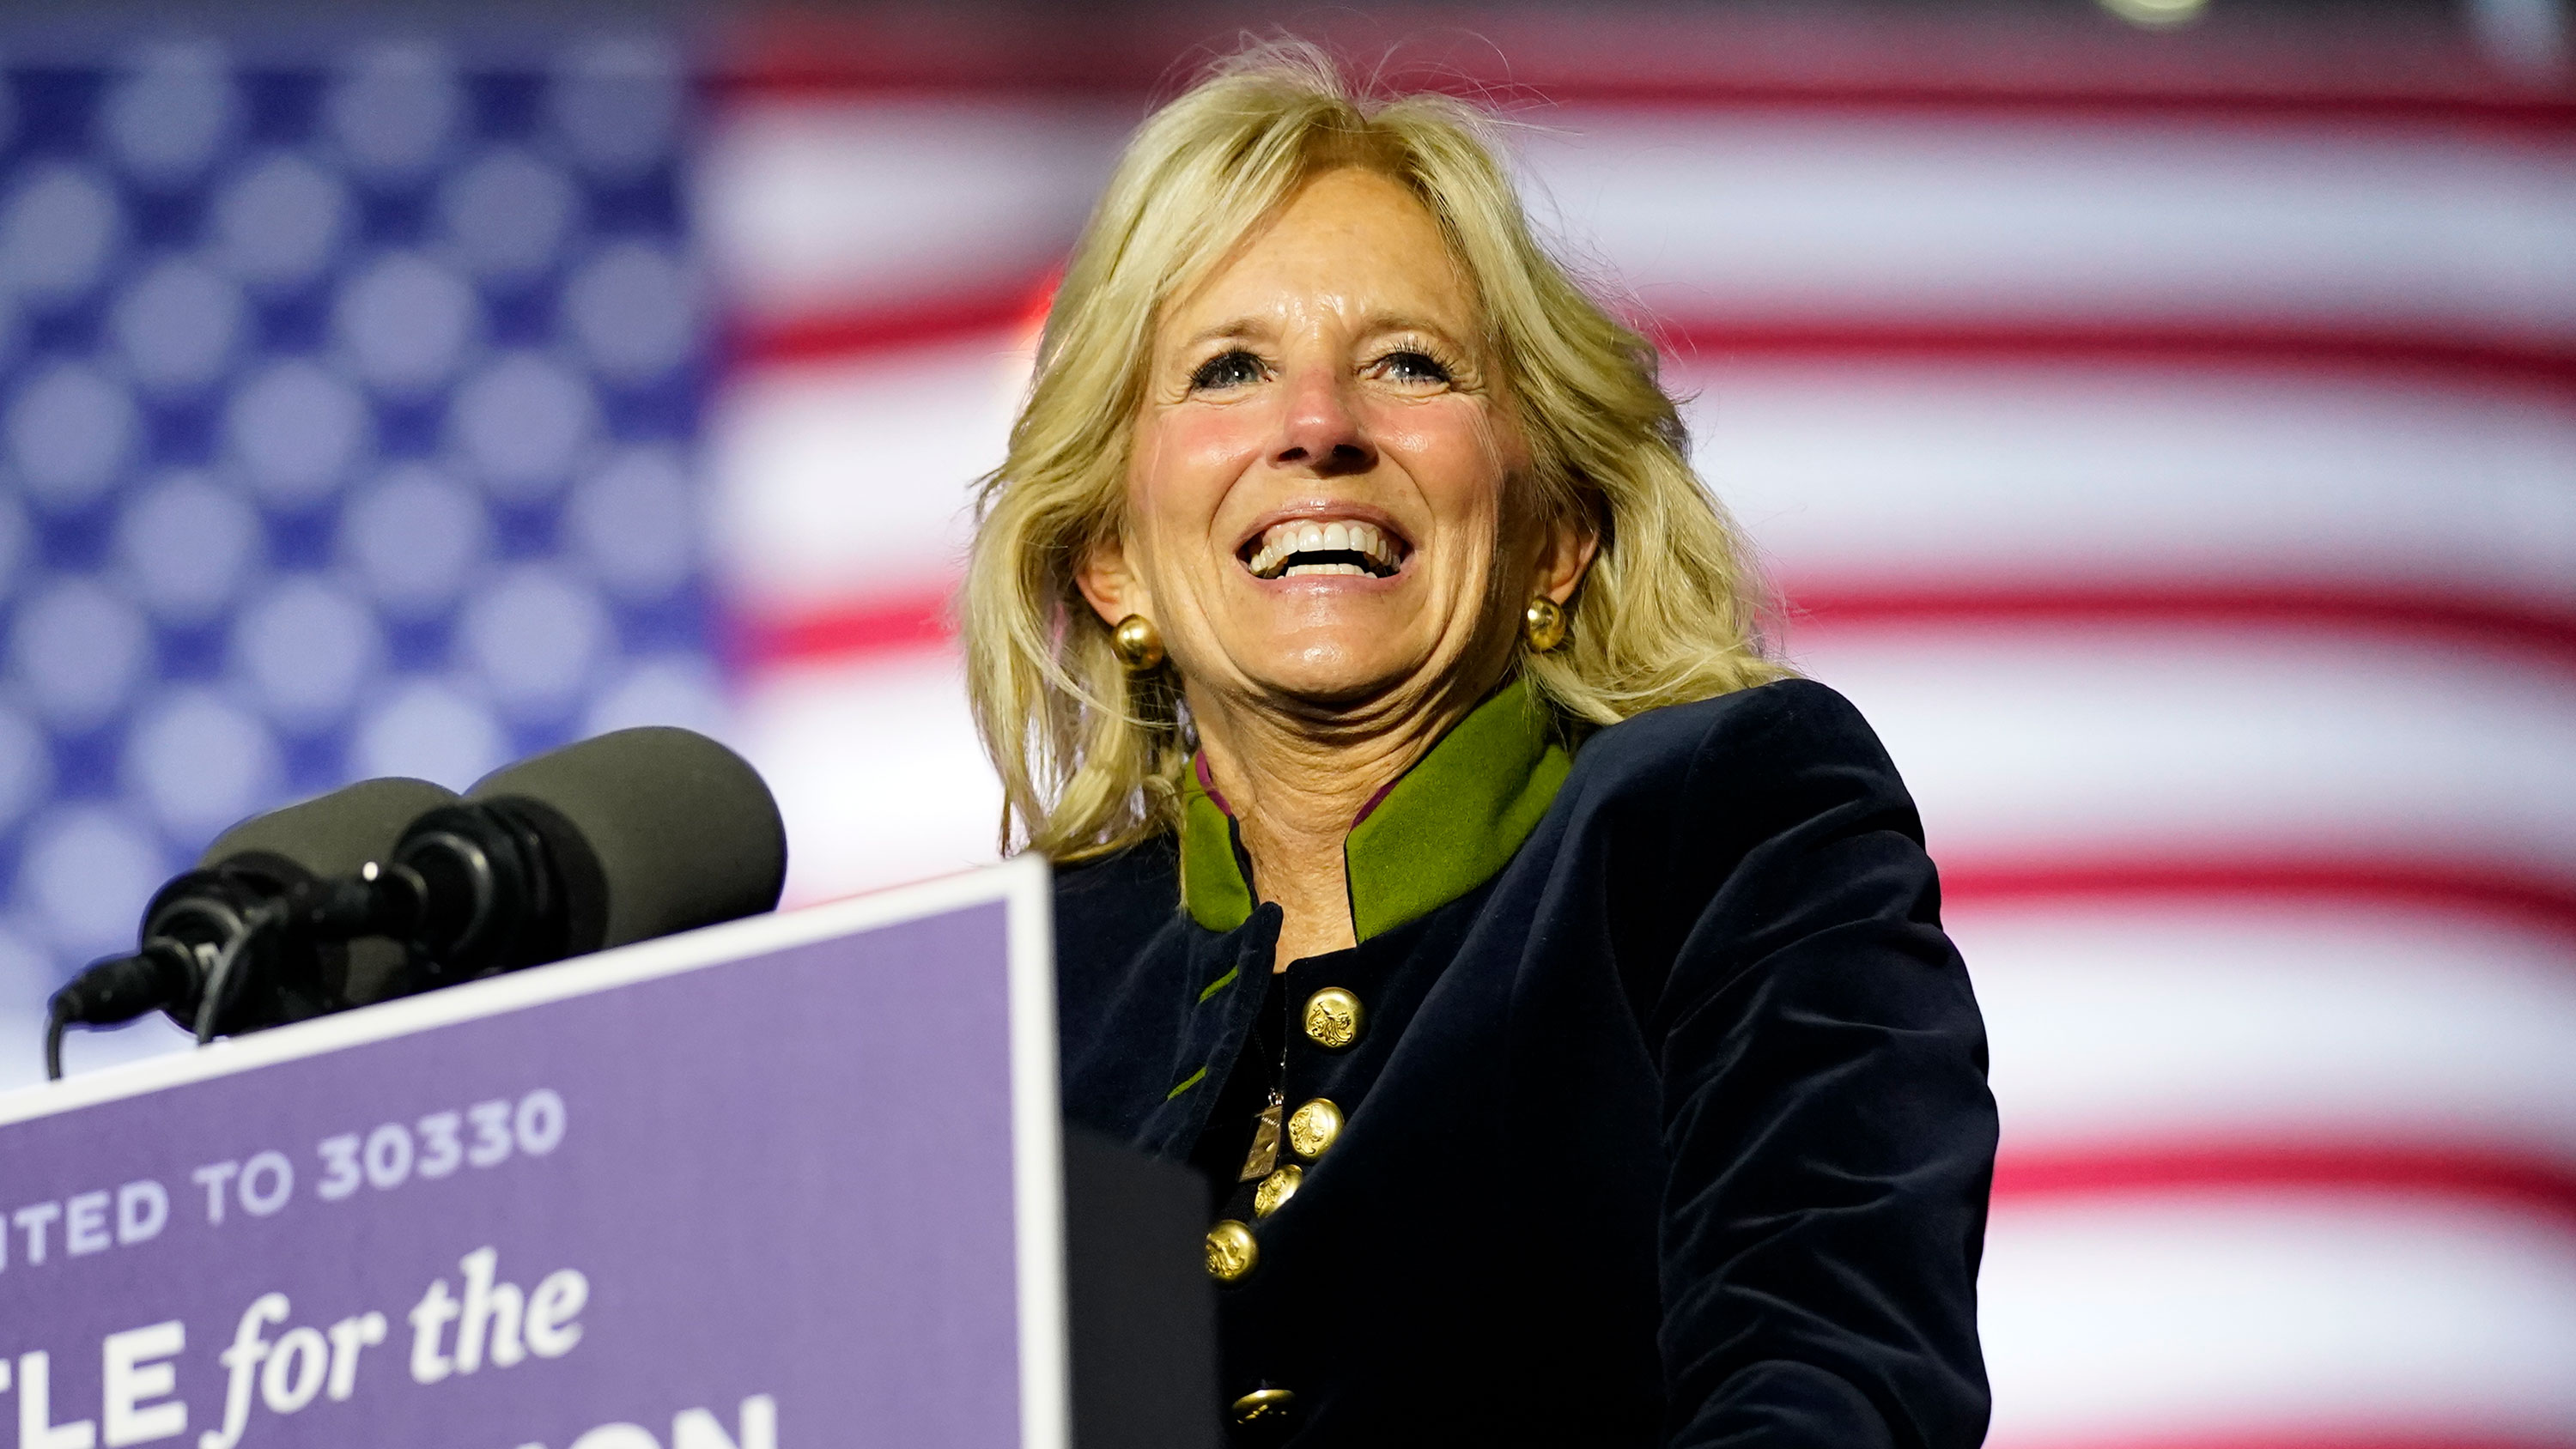 Jill Biden speaks during a campaign rally at Heinz Field on November 2 in Pittsburgh, Pennsylvania.